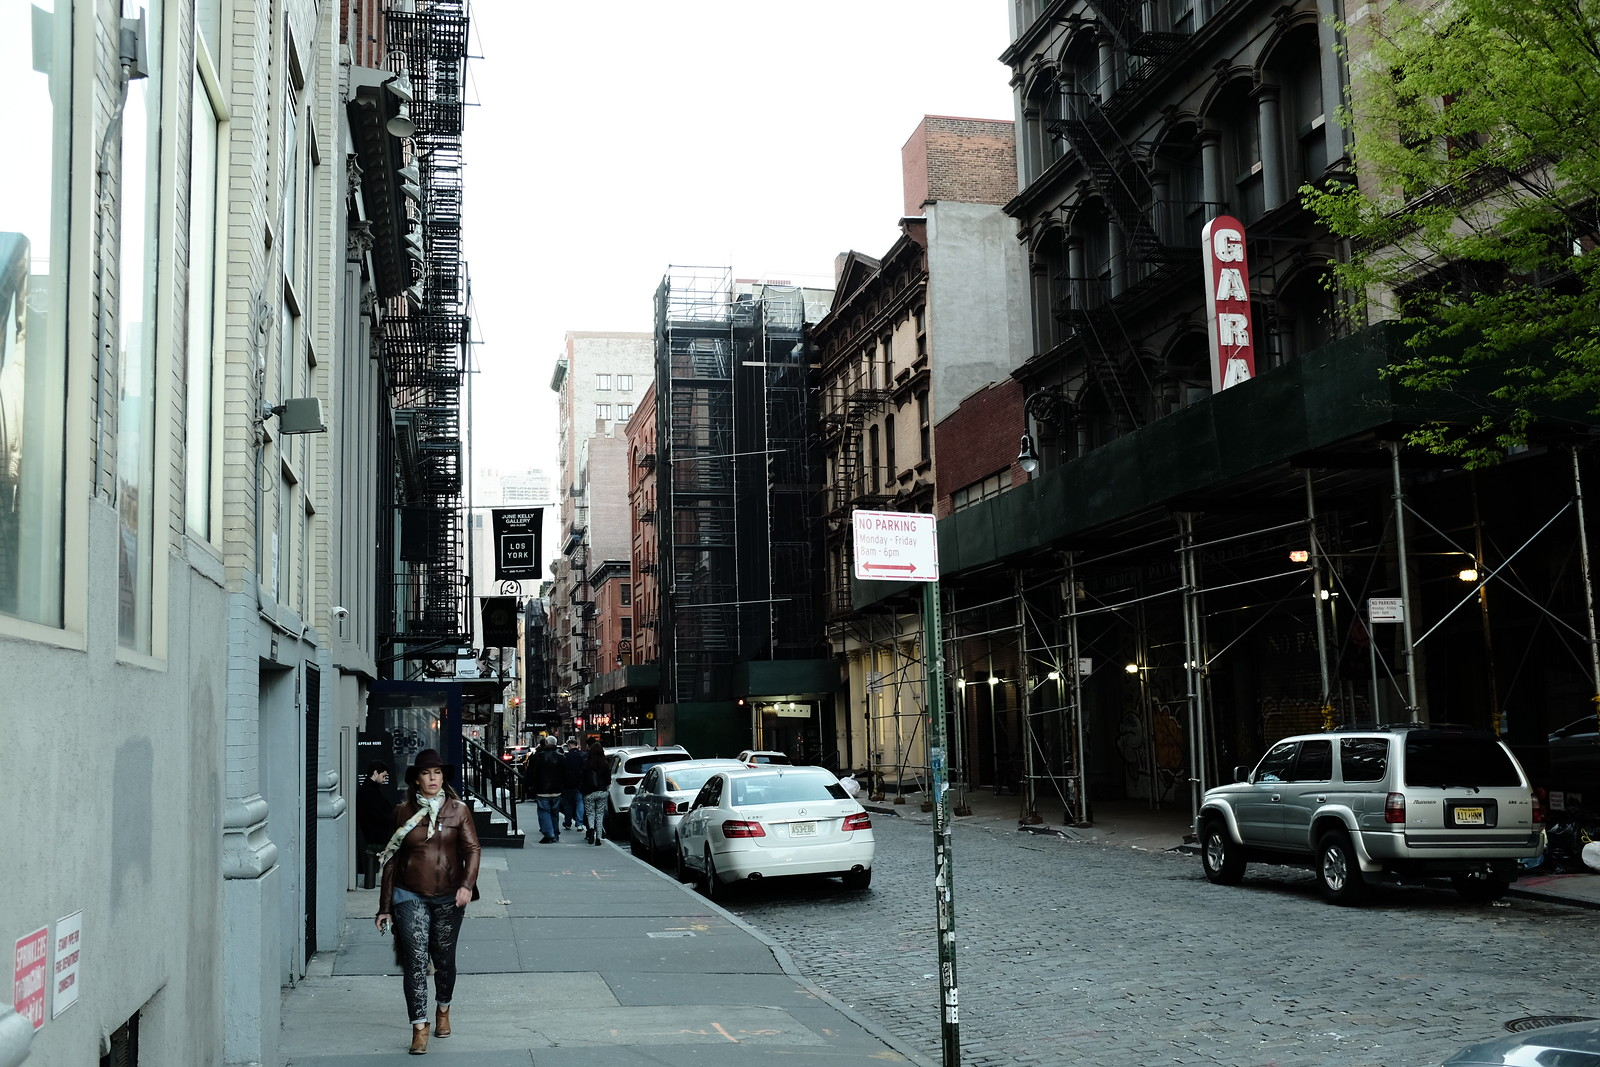 The New York Soho photo by FUJIFILM X100S.